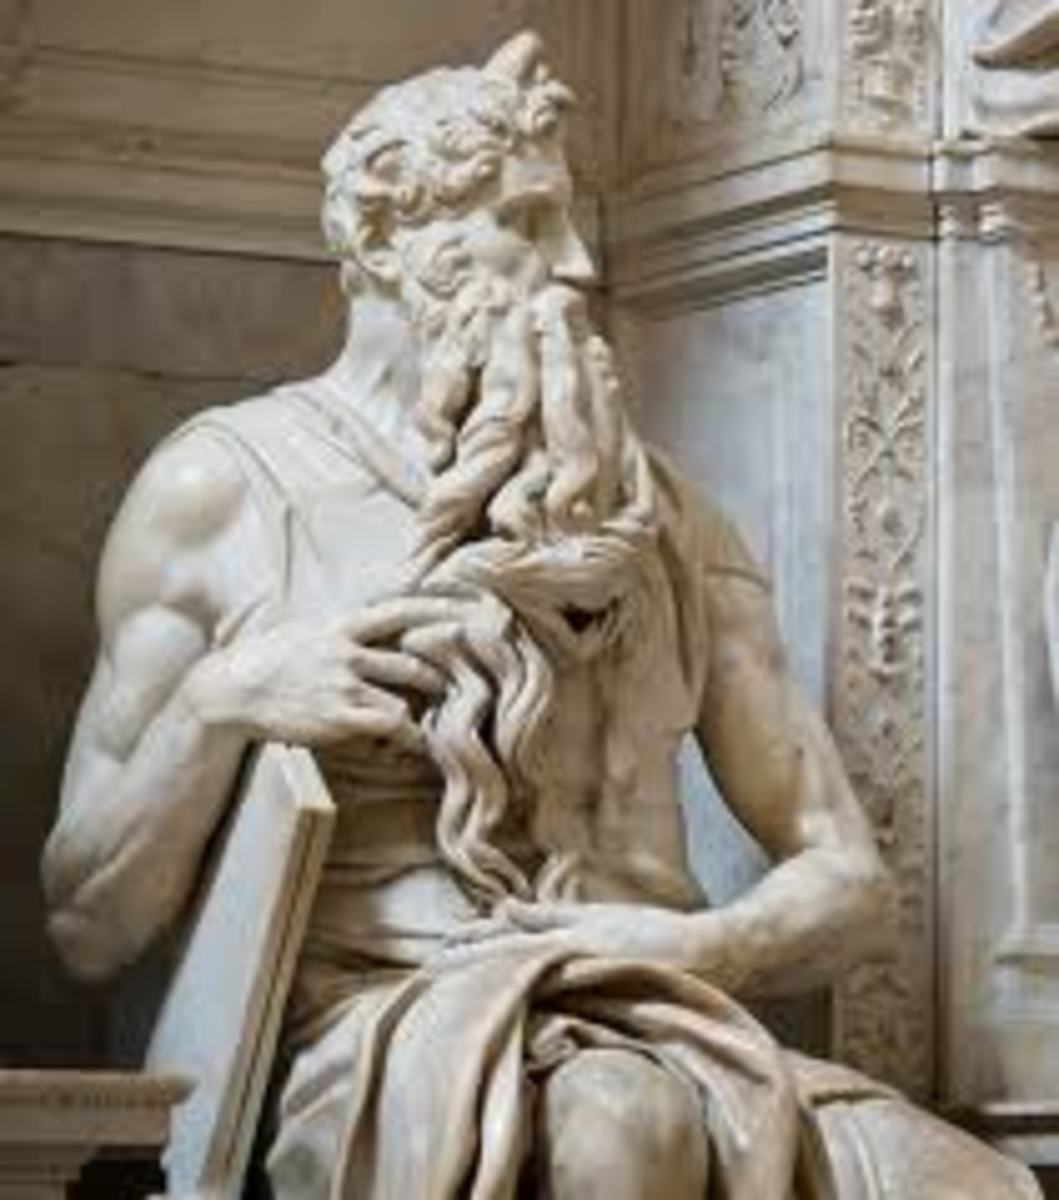 It is said that when Michelangelo finished this statue, he said why don't you speak? Because his statue was so lifelike. Now today we are talking about the creation of Adam from dust and my observation is that only God is able to make a statue speak